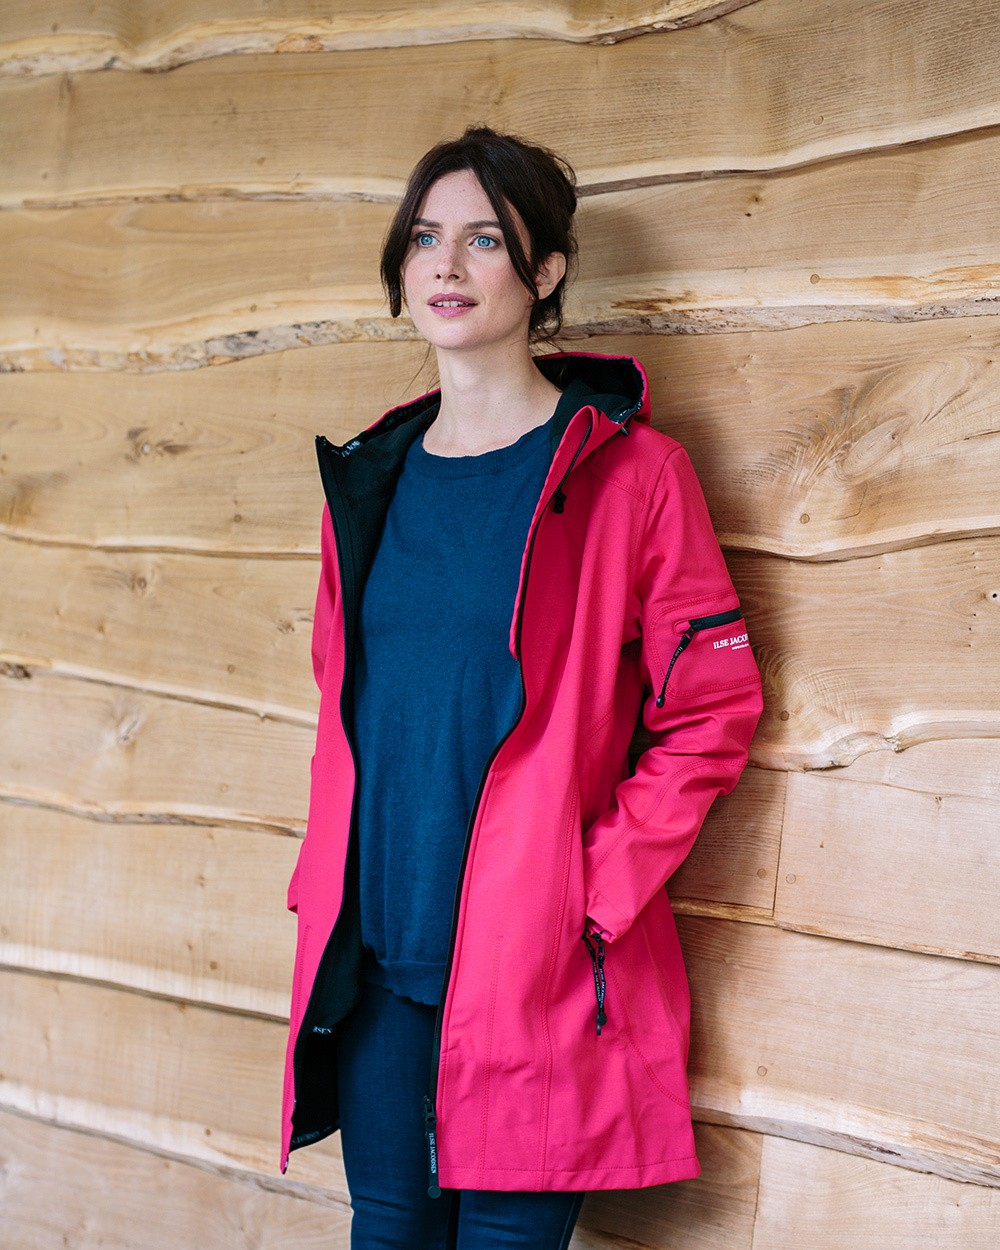 ilse jacobsen raincoat in sweet rose womens outerwear avoca. Black Bedroom Furniture Sets. Home Design Ideas